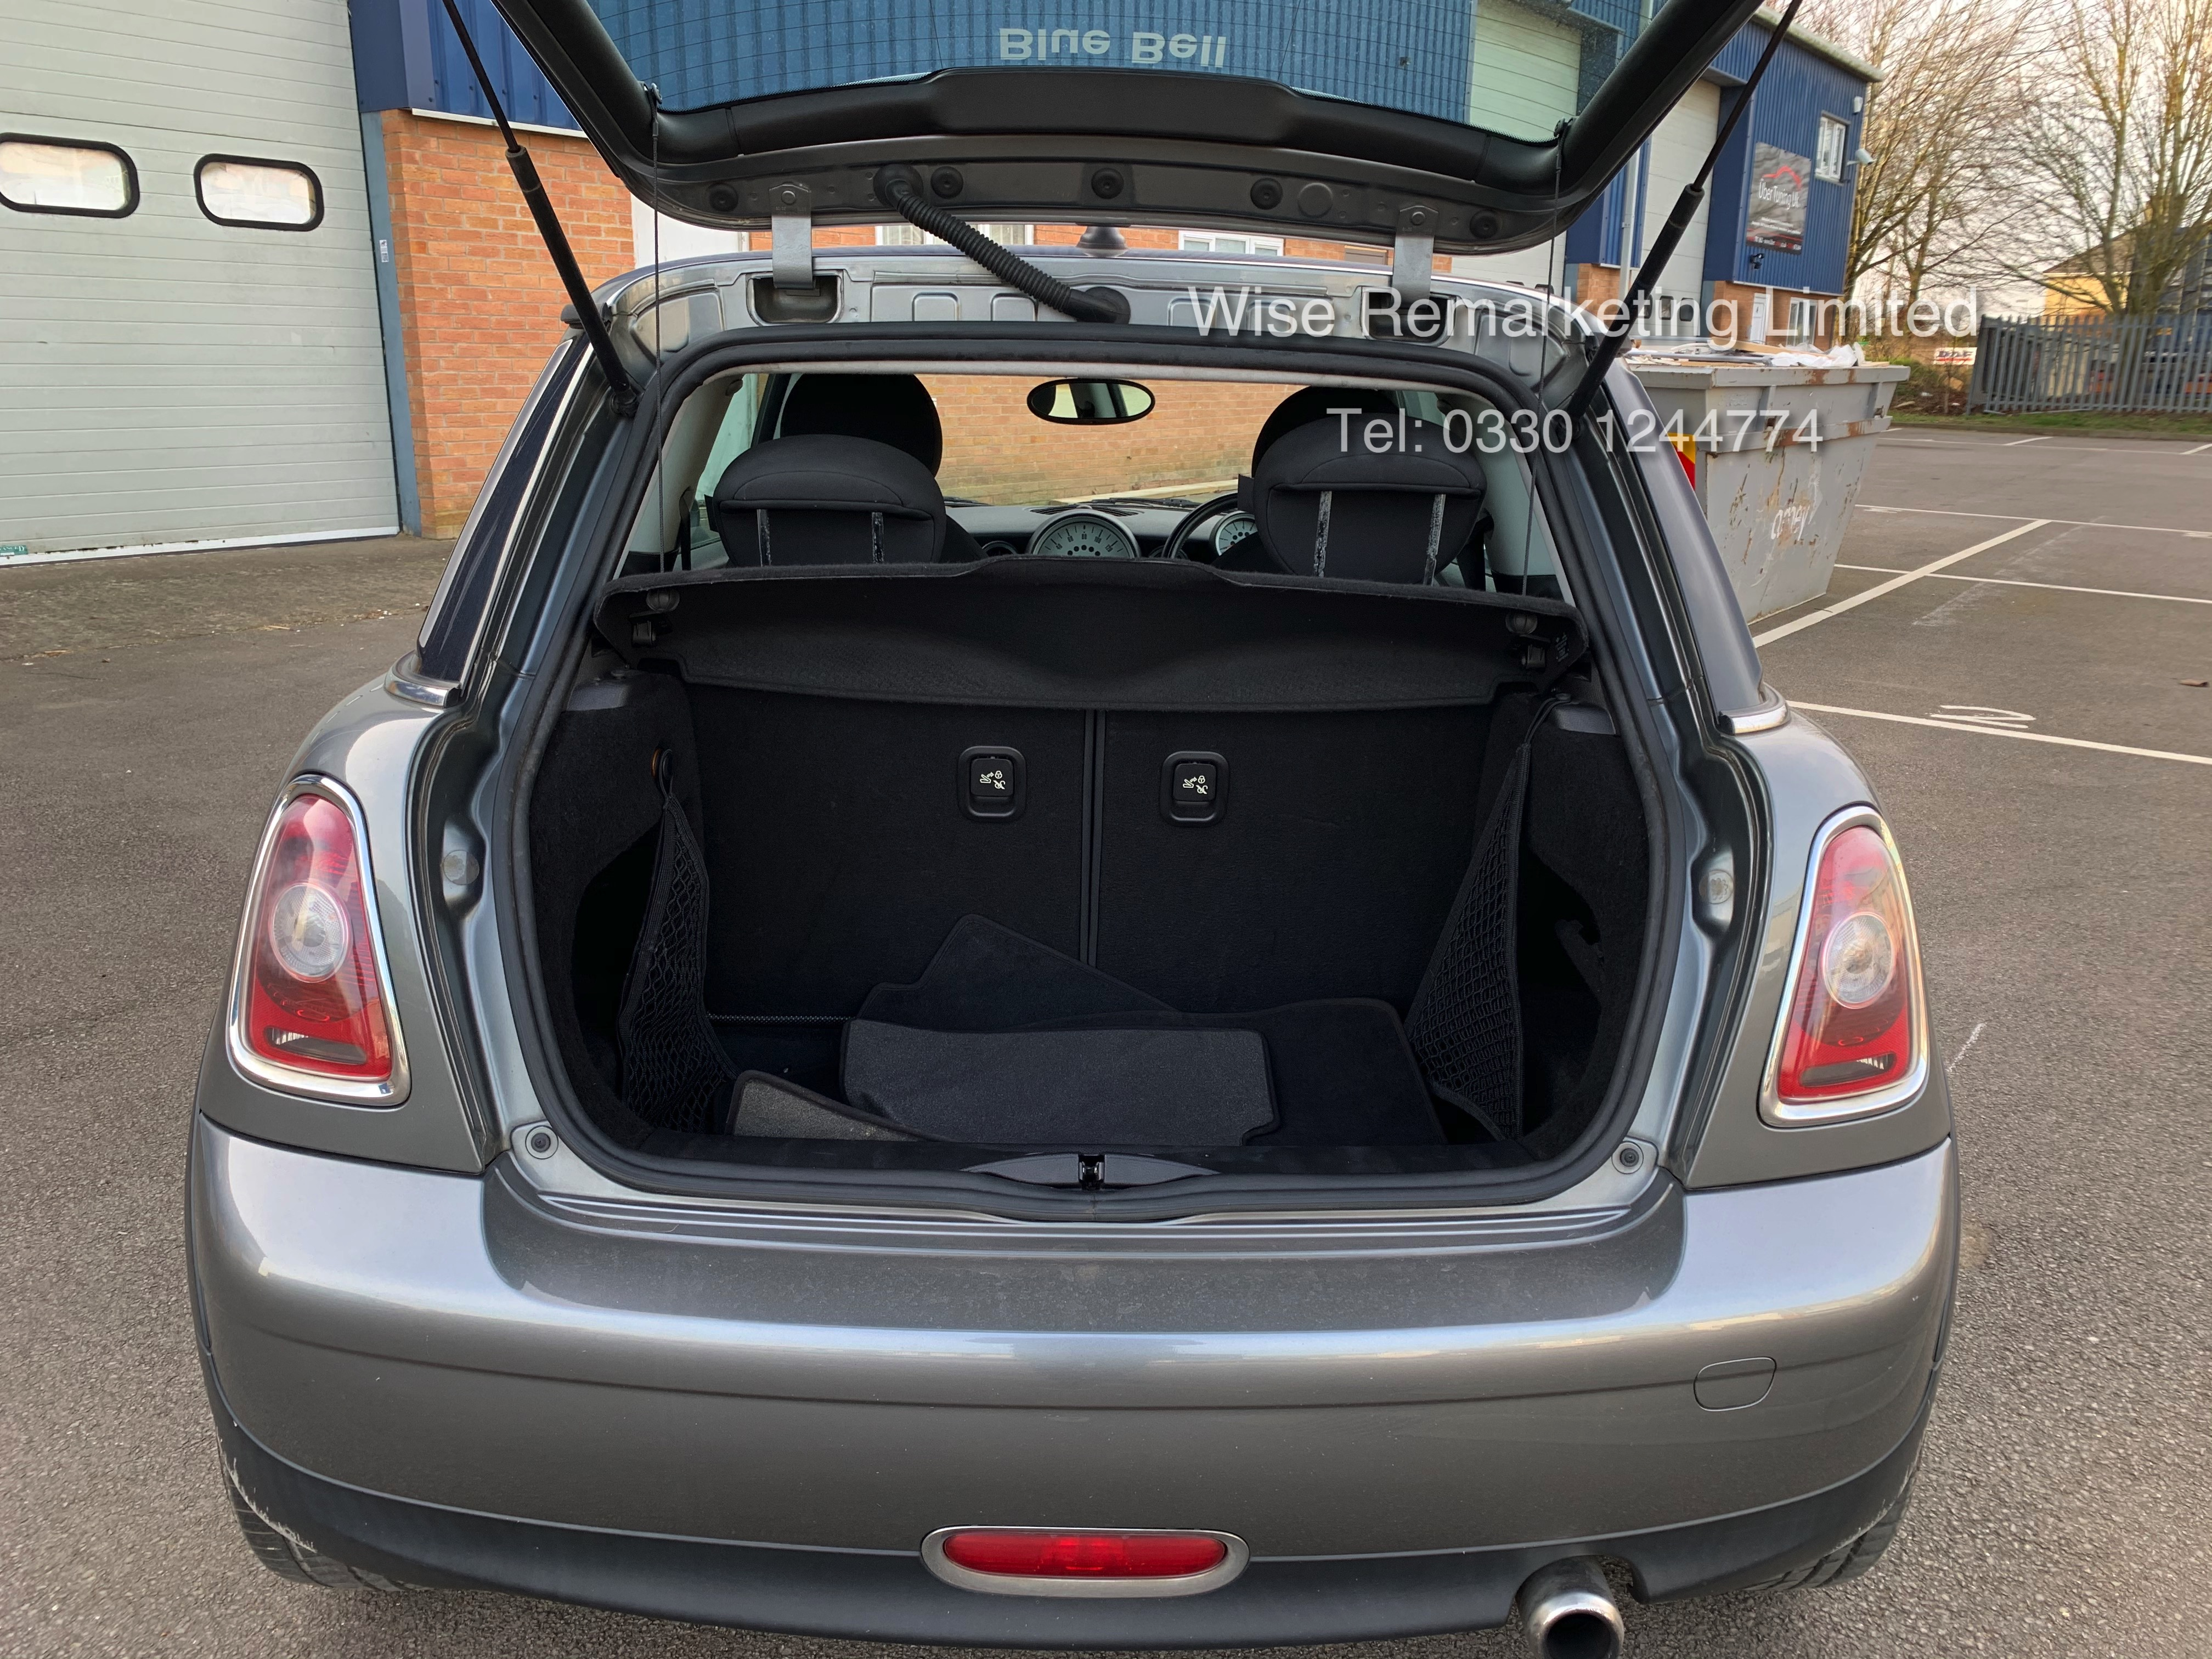 (RESERVE MET) Mini One Graphite 1.4 Petrol - 2010 Model - Service History - 6 Speed - Air Con - - Image 7 of 19